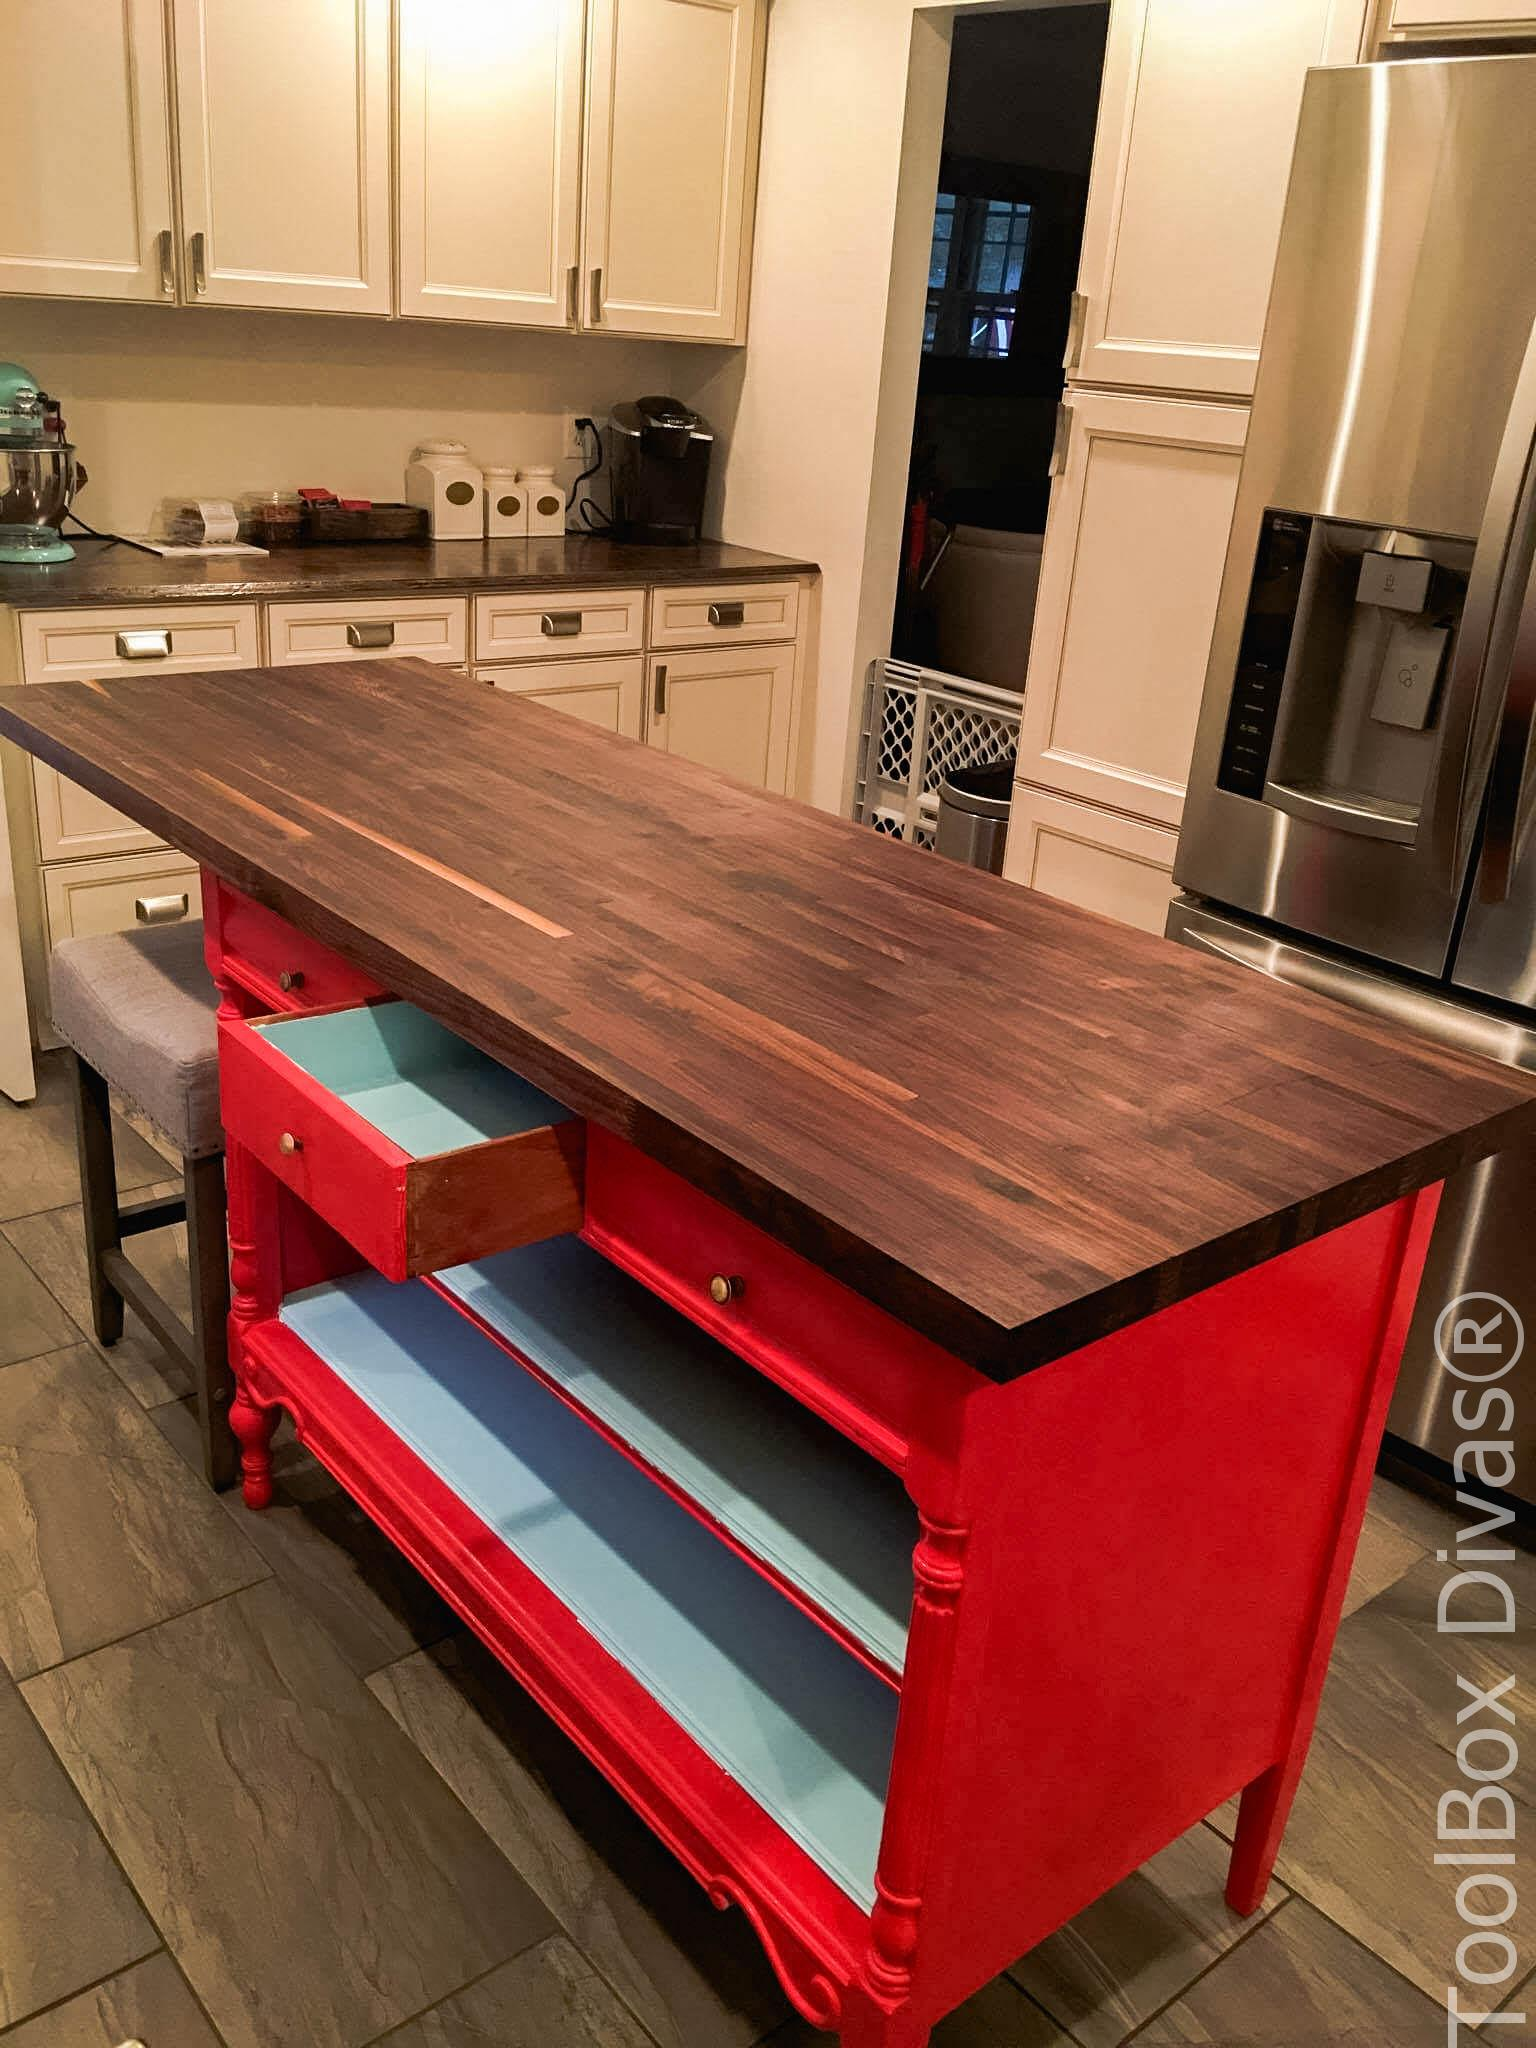 all dressed up turn an old dresser into a kitchen island toolbox rh toolboxdivas com Turning a Table into a Kitchen Island Convert Dresser to Kitchen Island